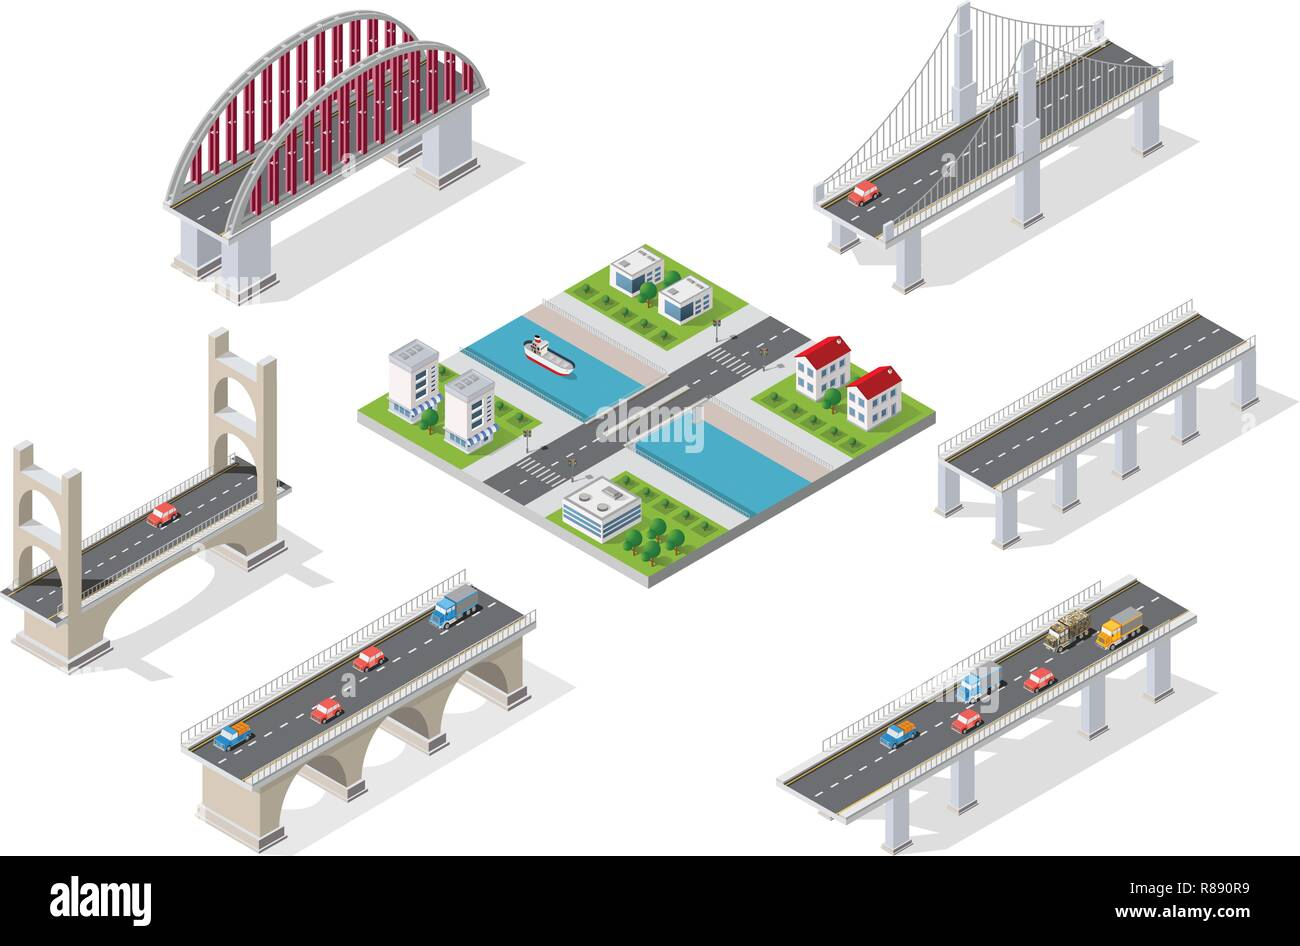 Bridges in the field of industrial construction and heavy industry. Template for presentation and design - Stock Vector